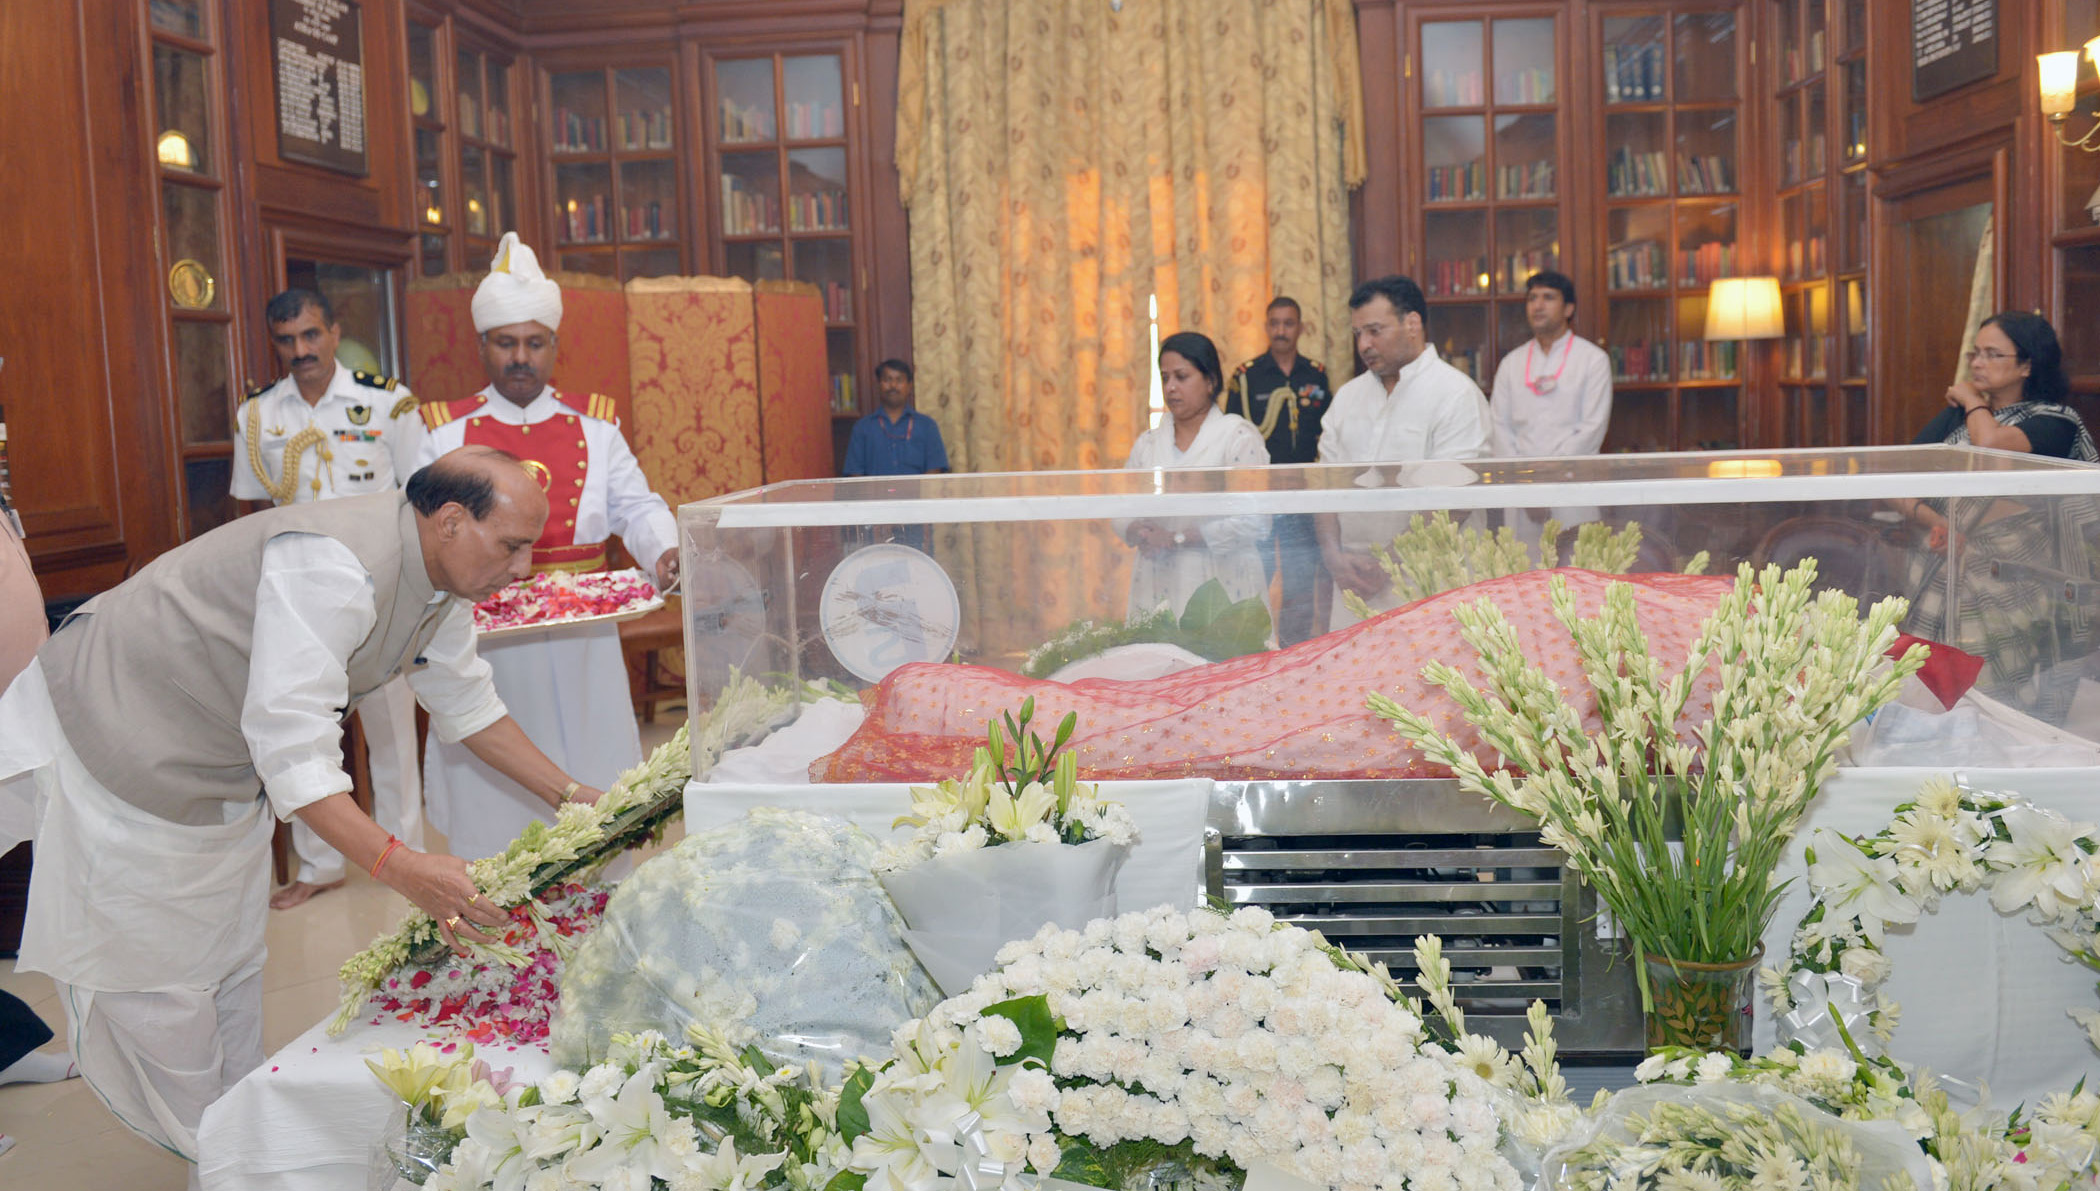 The Union Home Minister, Shri Rajnath Singh paying homage at the mortal remains of Smt. Suvra Mukherjee, First Lady, at Rashtrapati Bhavan, in New Delhi on August 18, 2015.